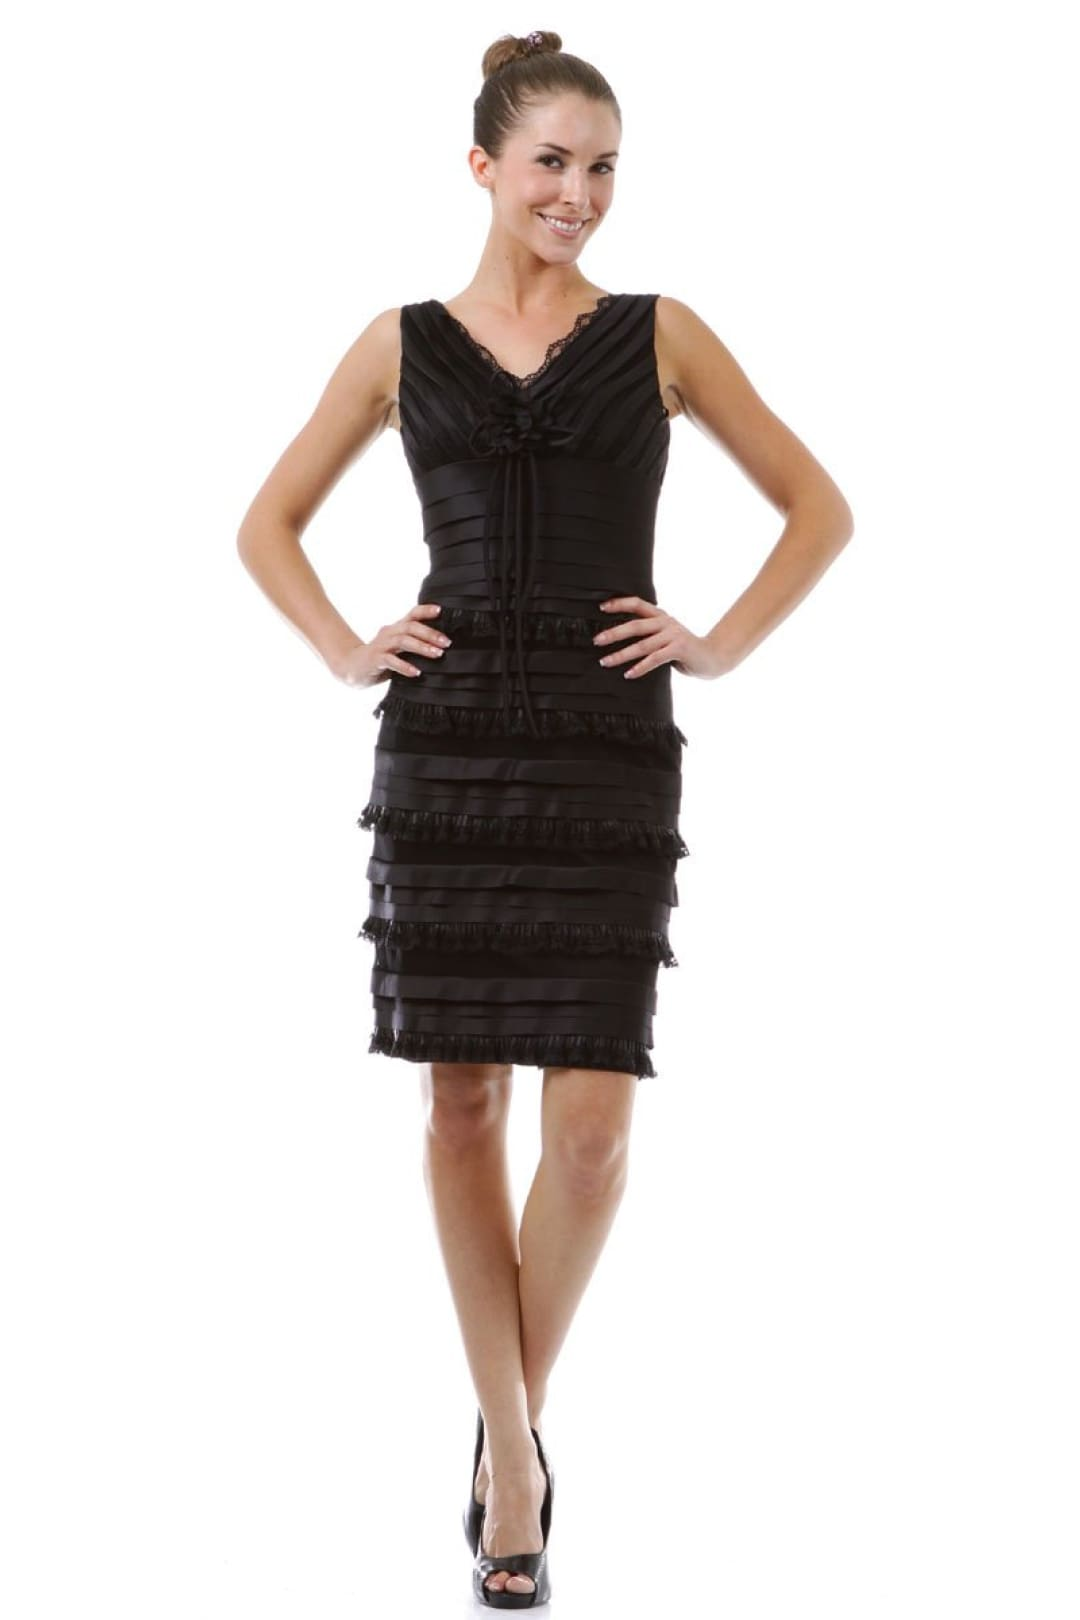 Modest short Evening Dress - Black / 4